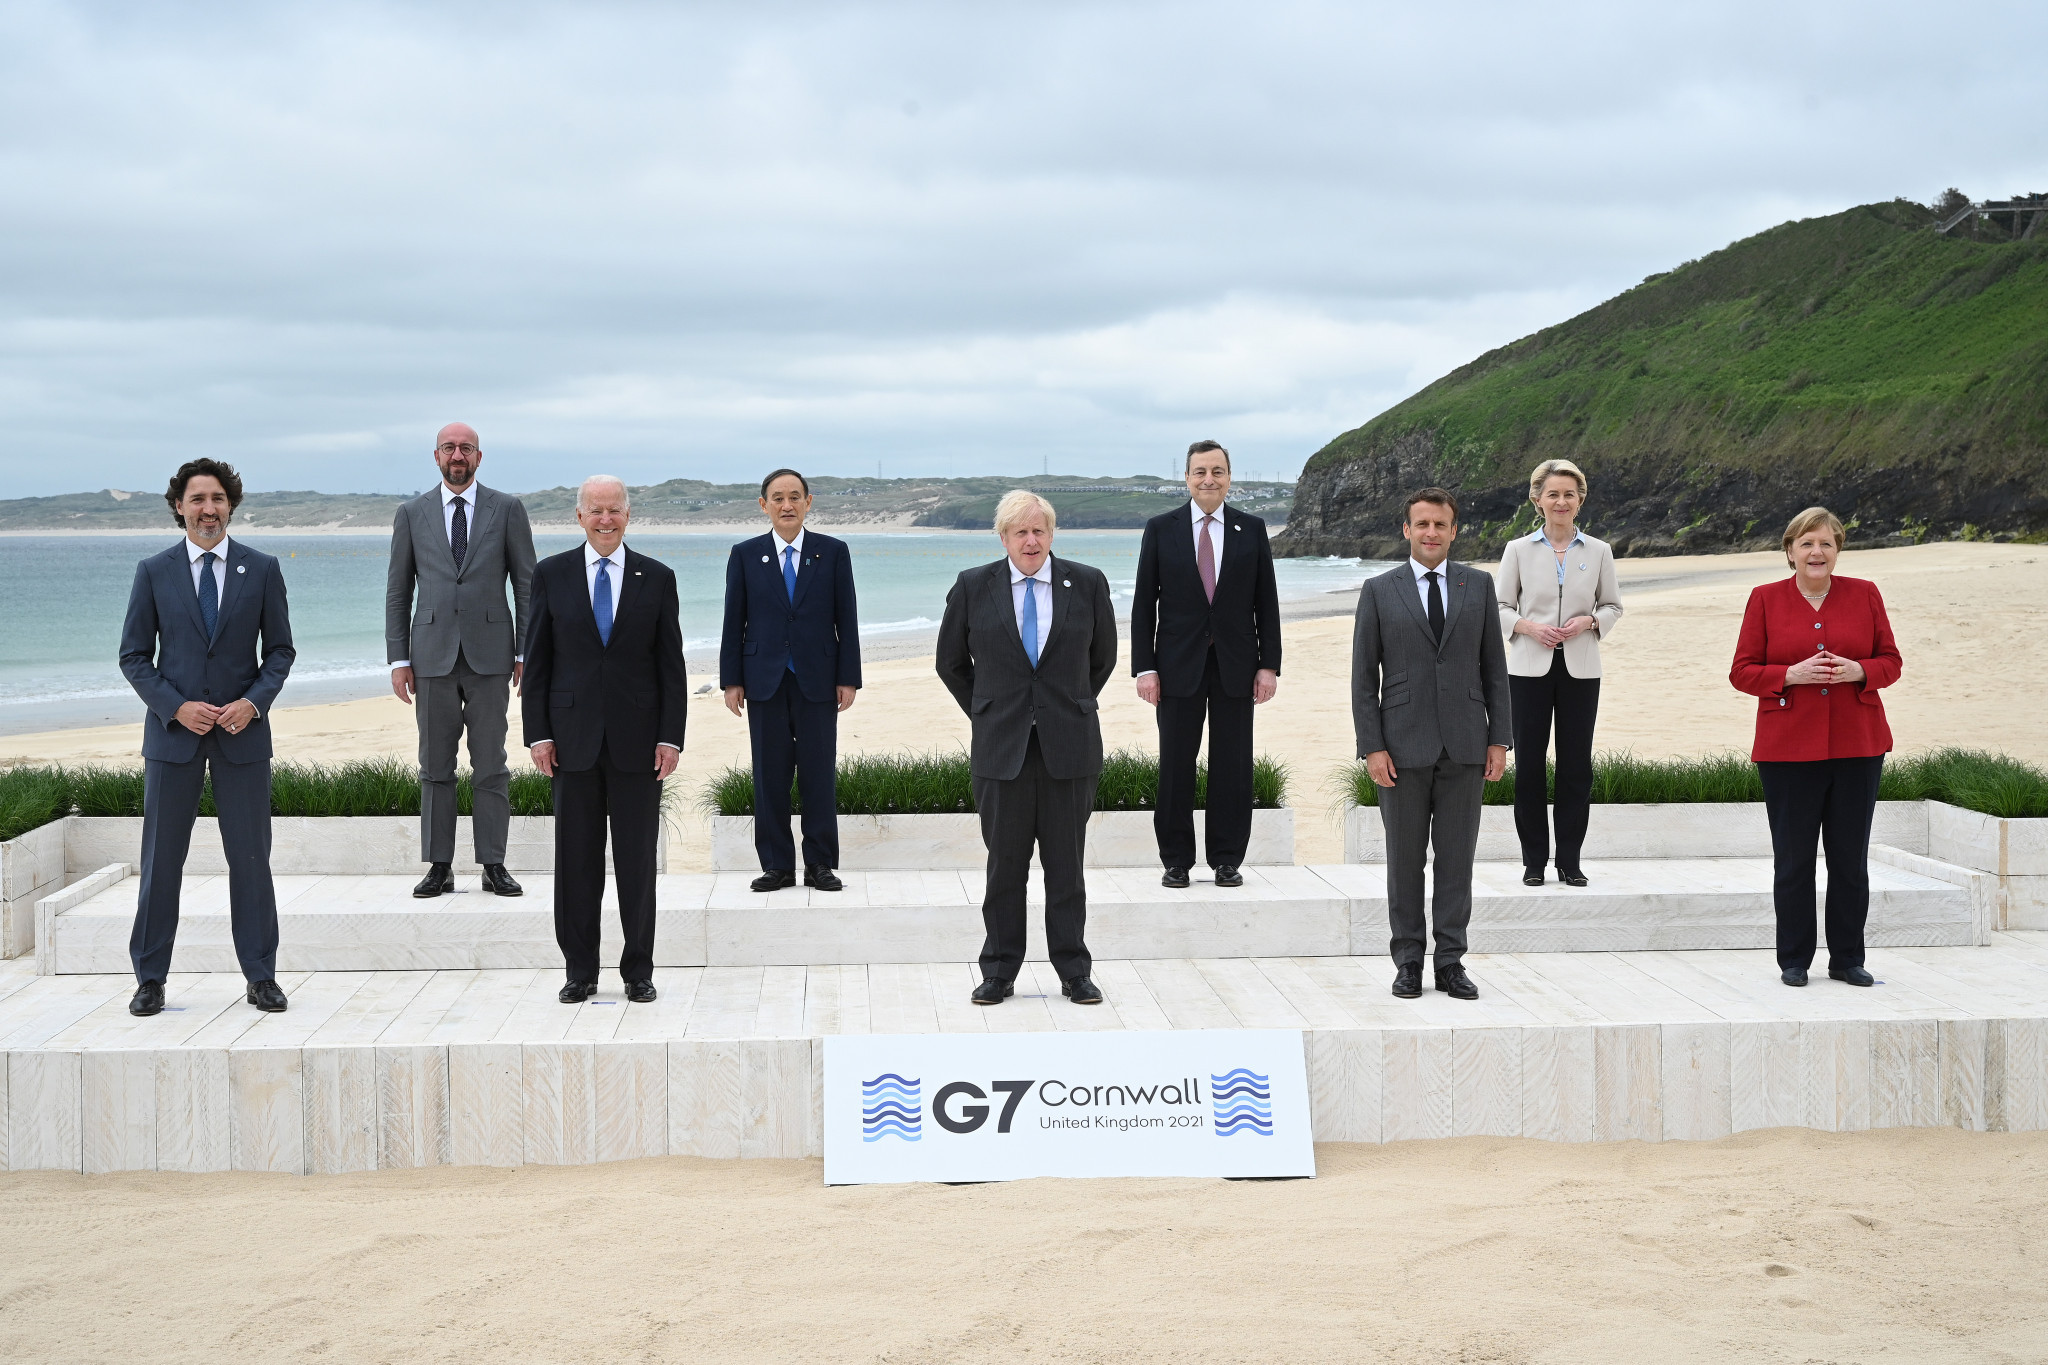 """G7 leaders - pictured with leading European Union officials - have reiterated """"our support for the holding of the Olympic and Paralympic Games Tokyo 2020 in a safe and secure manner"""" ©Getty Images"""